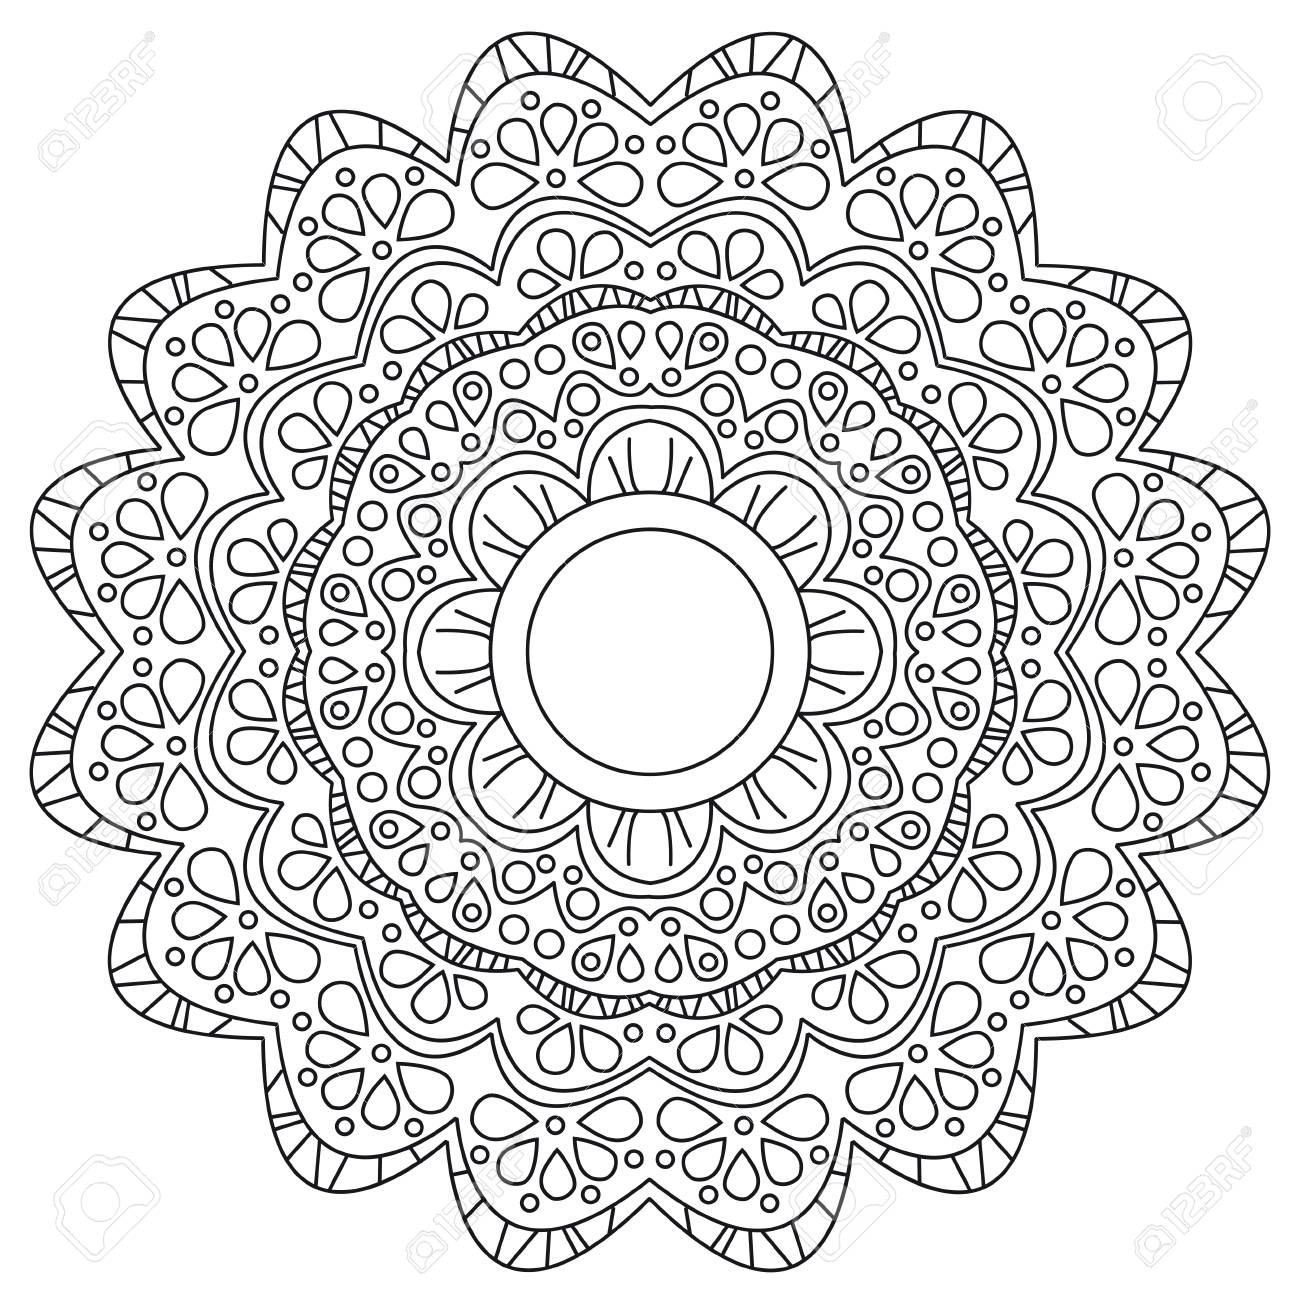 Vector illustration of a black and white floral background - 88185327